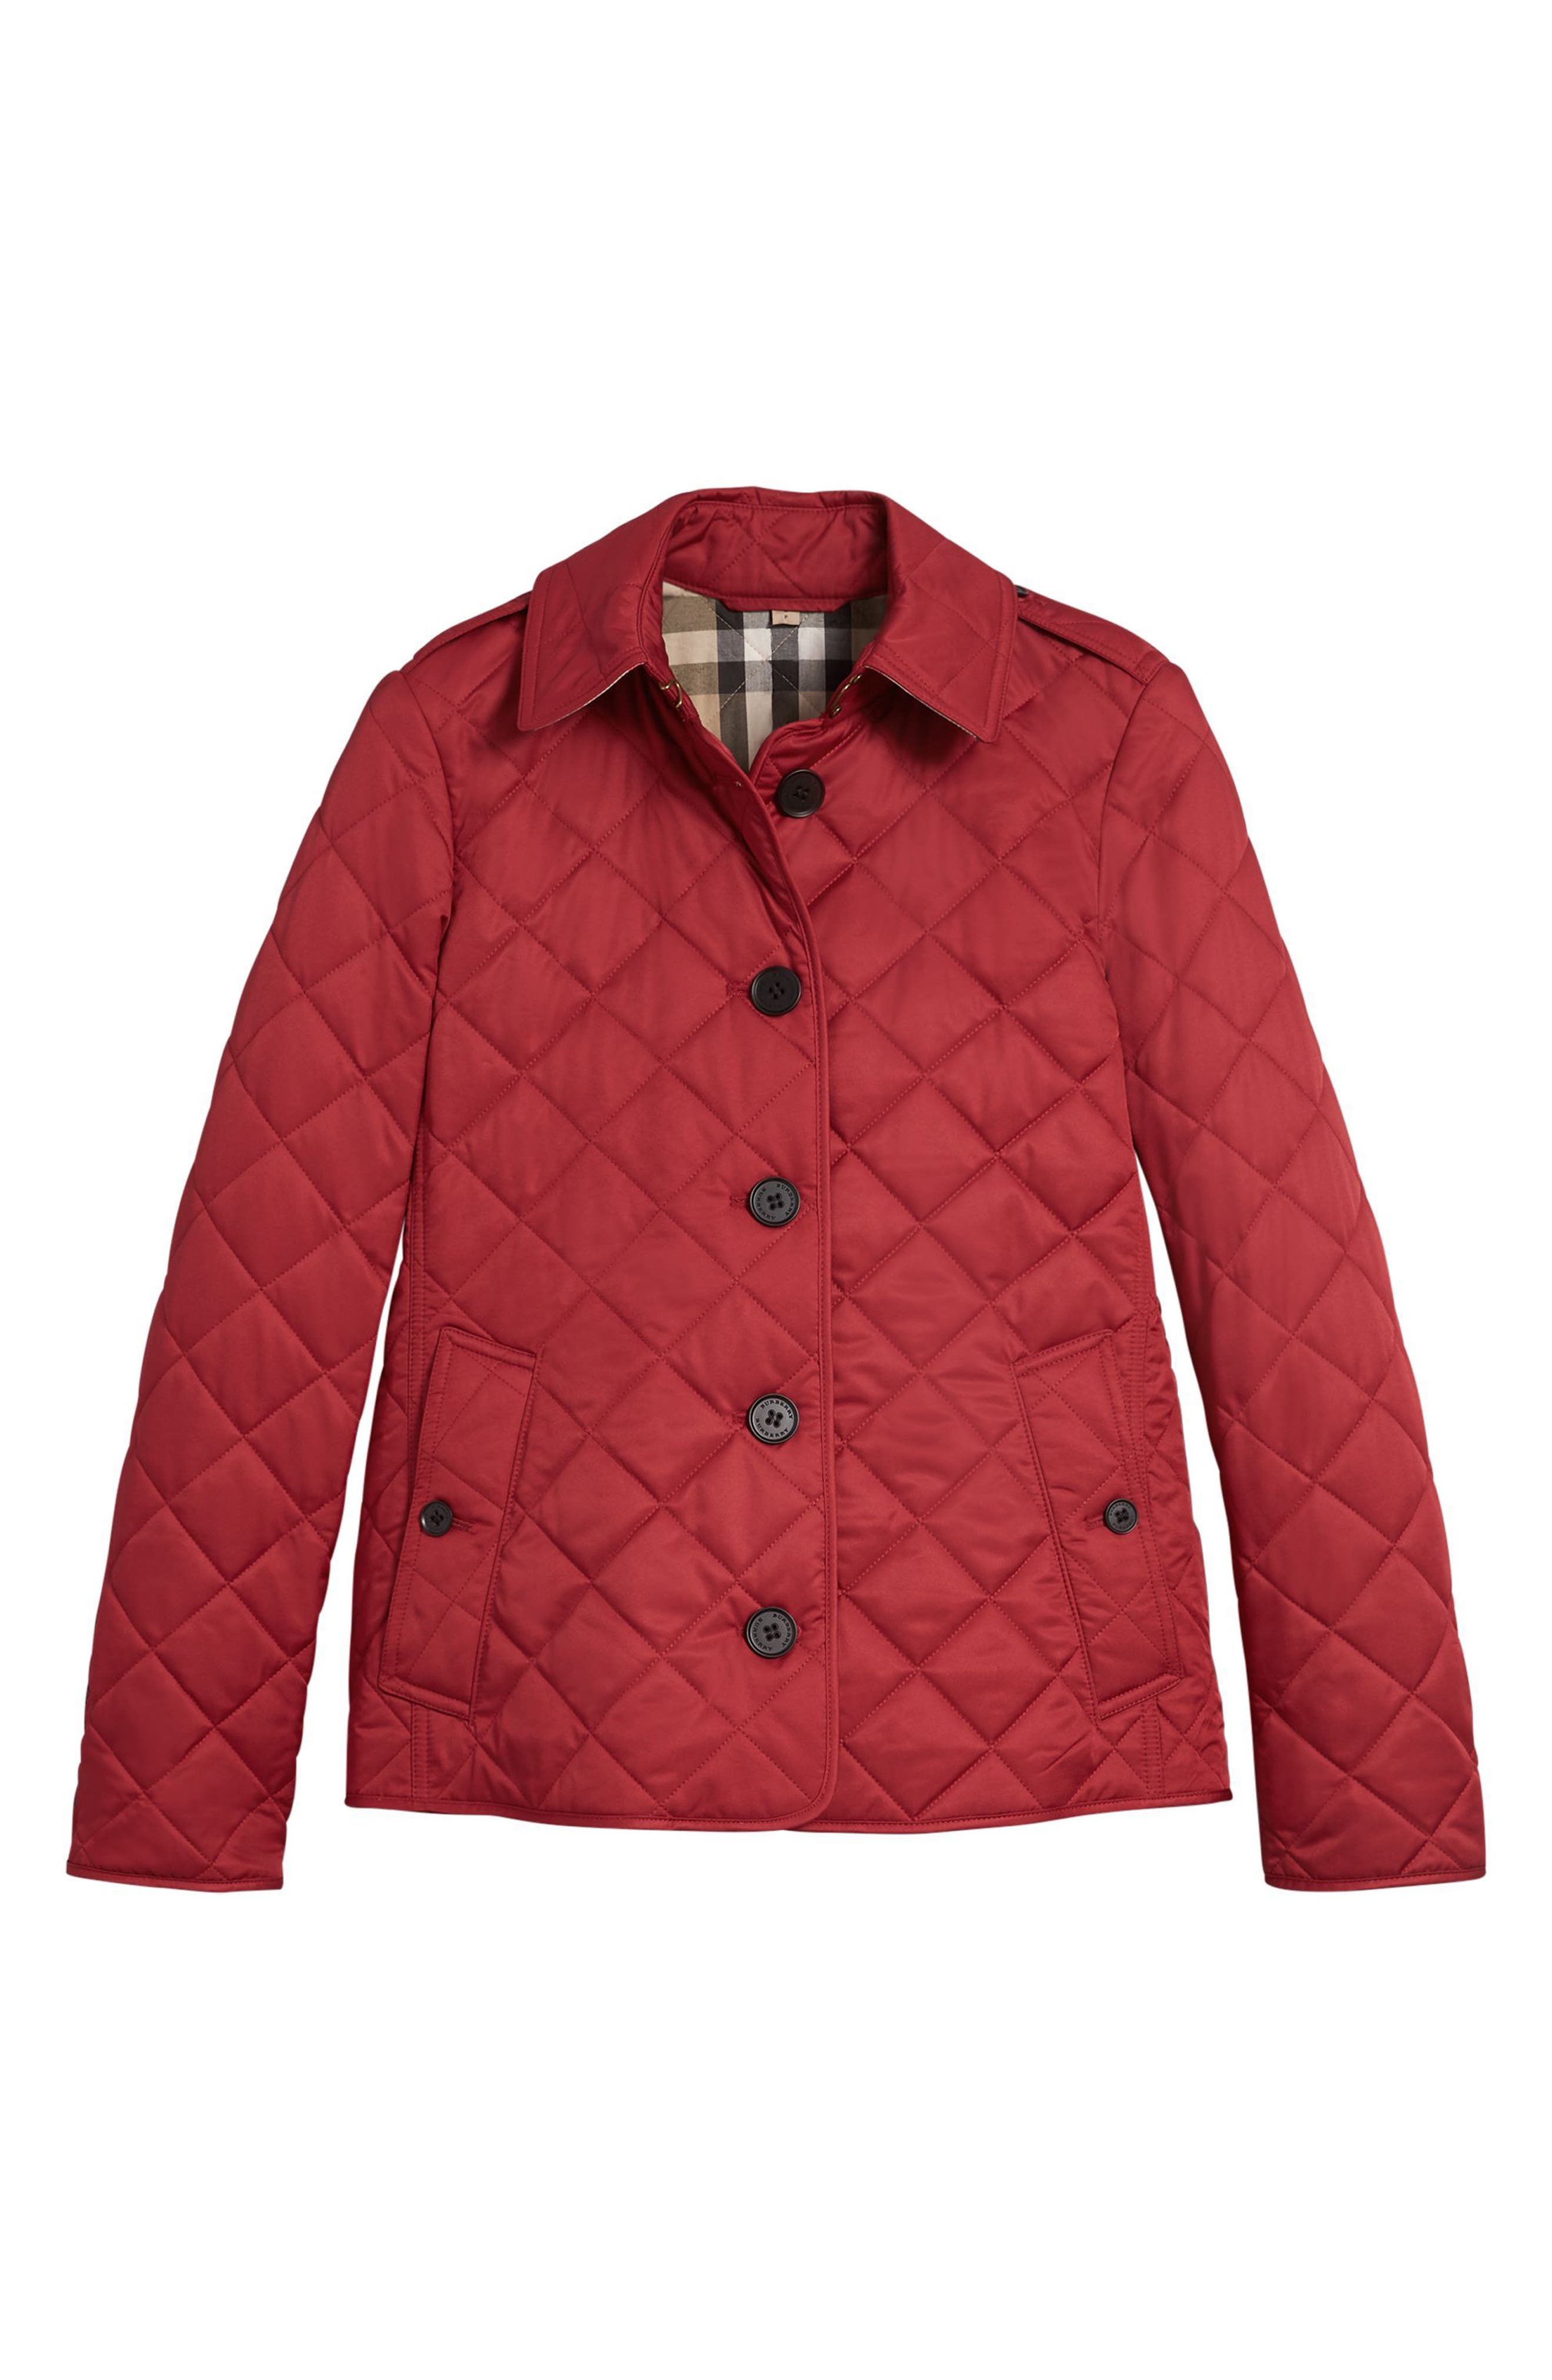 Frankby Quilted Jacket,                             Alternate thumbnail 6, color,                             PARADE RED